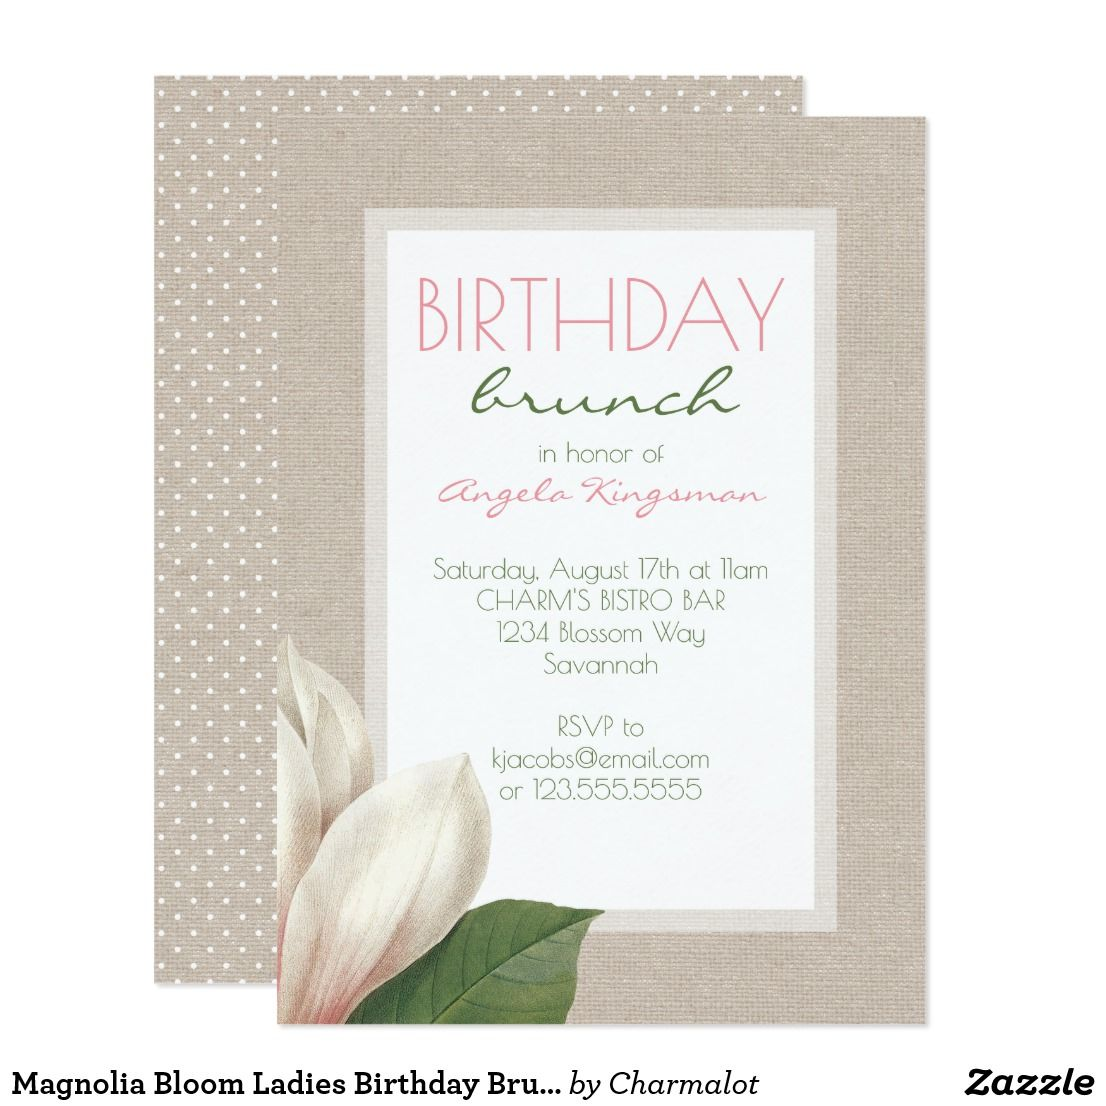 Magnolia Bloom Ladies Birthday Brunch Invitation | { Happy Birthday ...